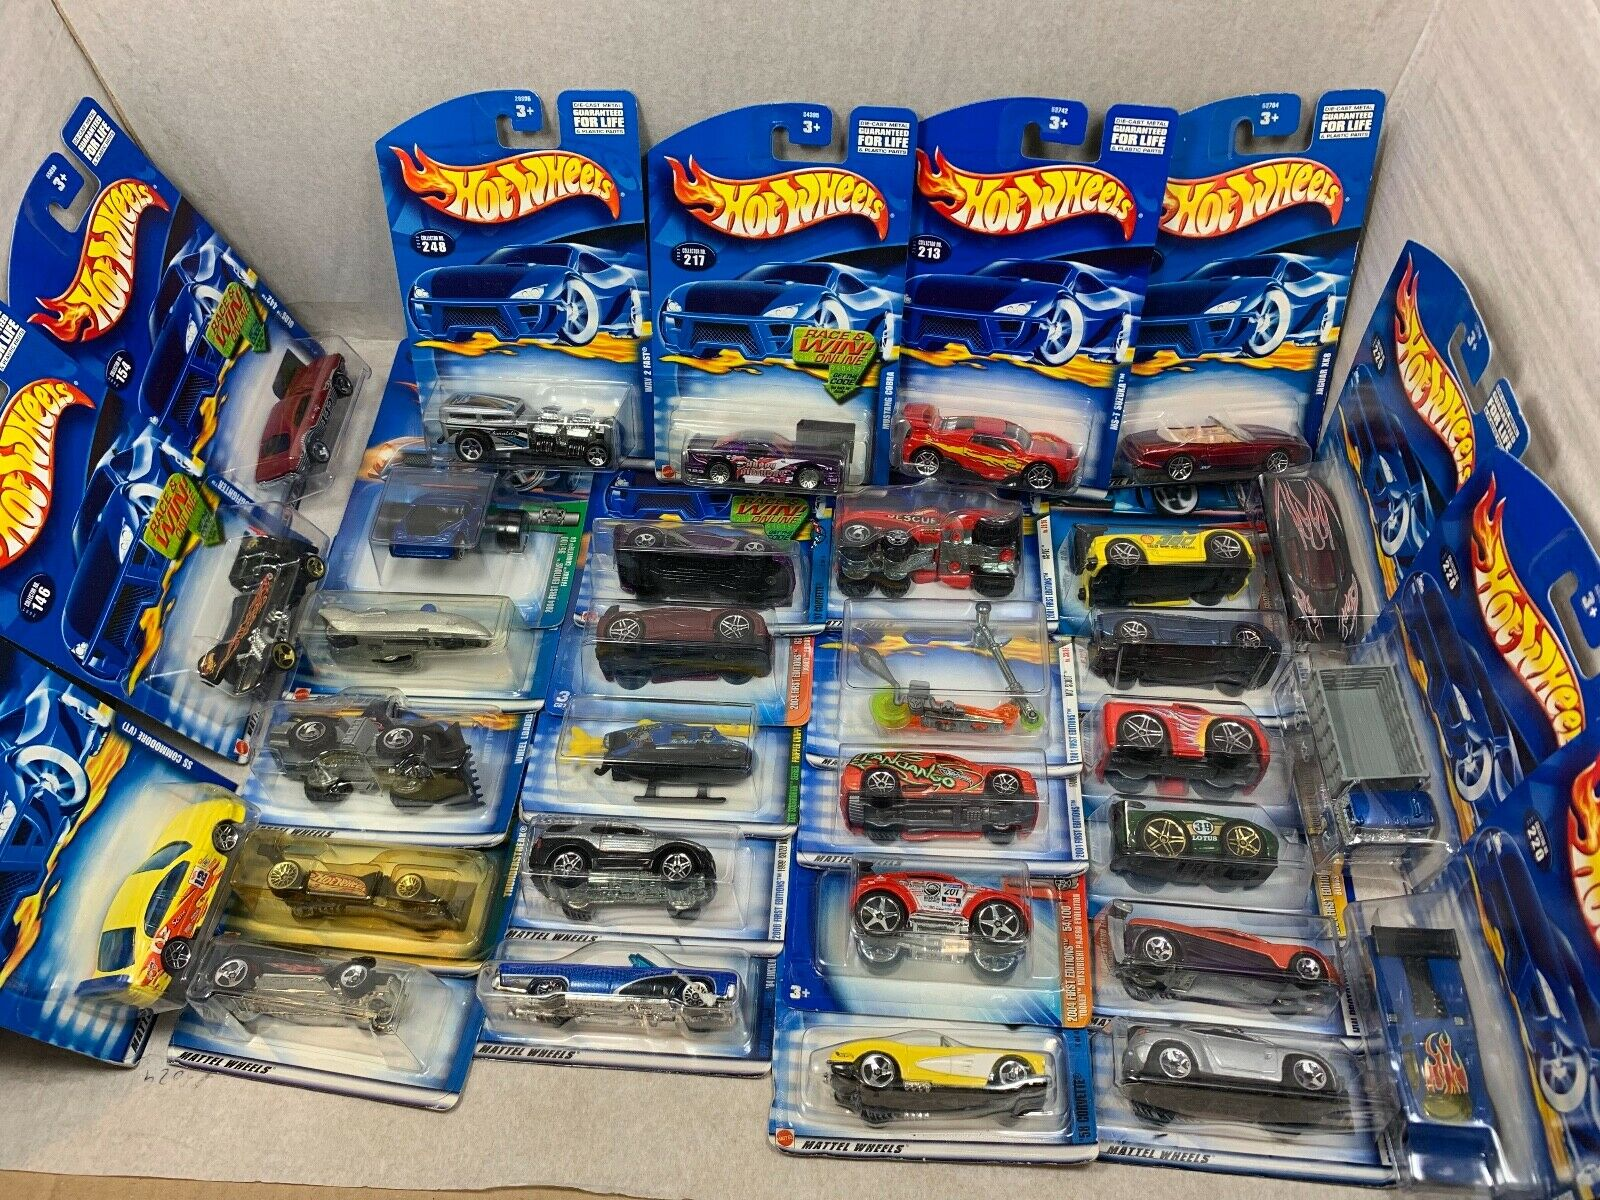 BRAND NEW  IN THE BOX MATTEL HOT WHEELS  DIE CAST COLLECTABLE CARS 1990'S Cars, Trucks & Vans